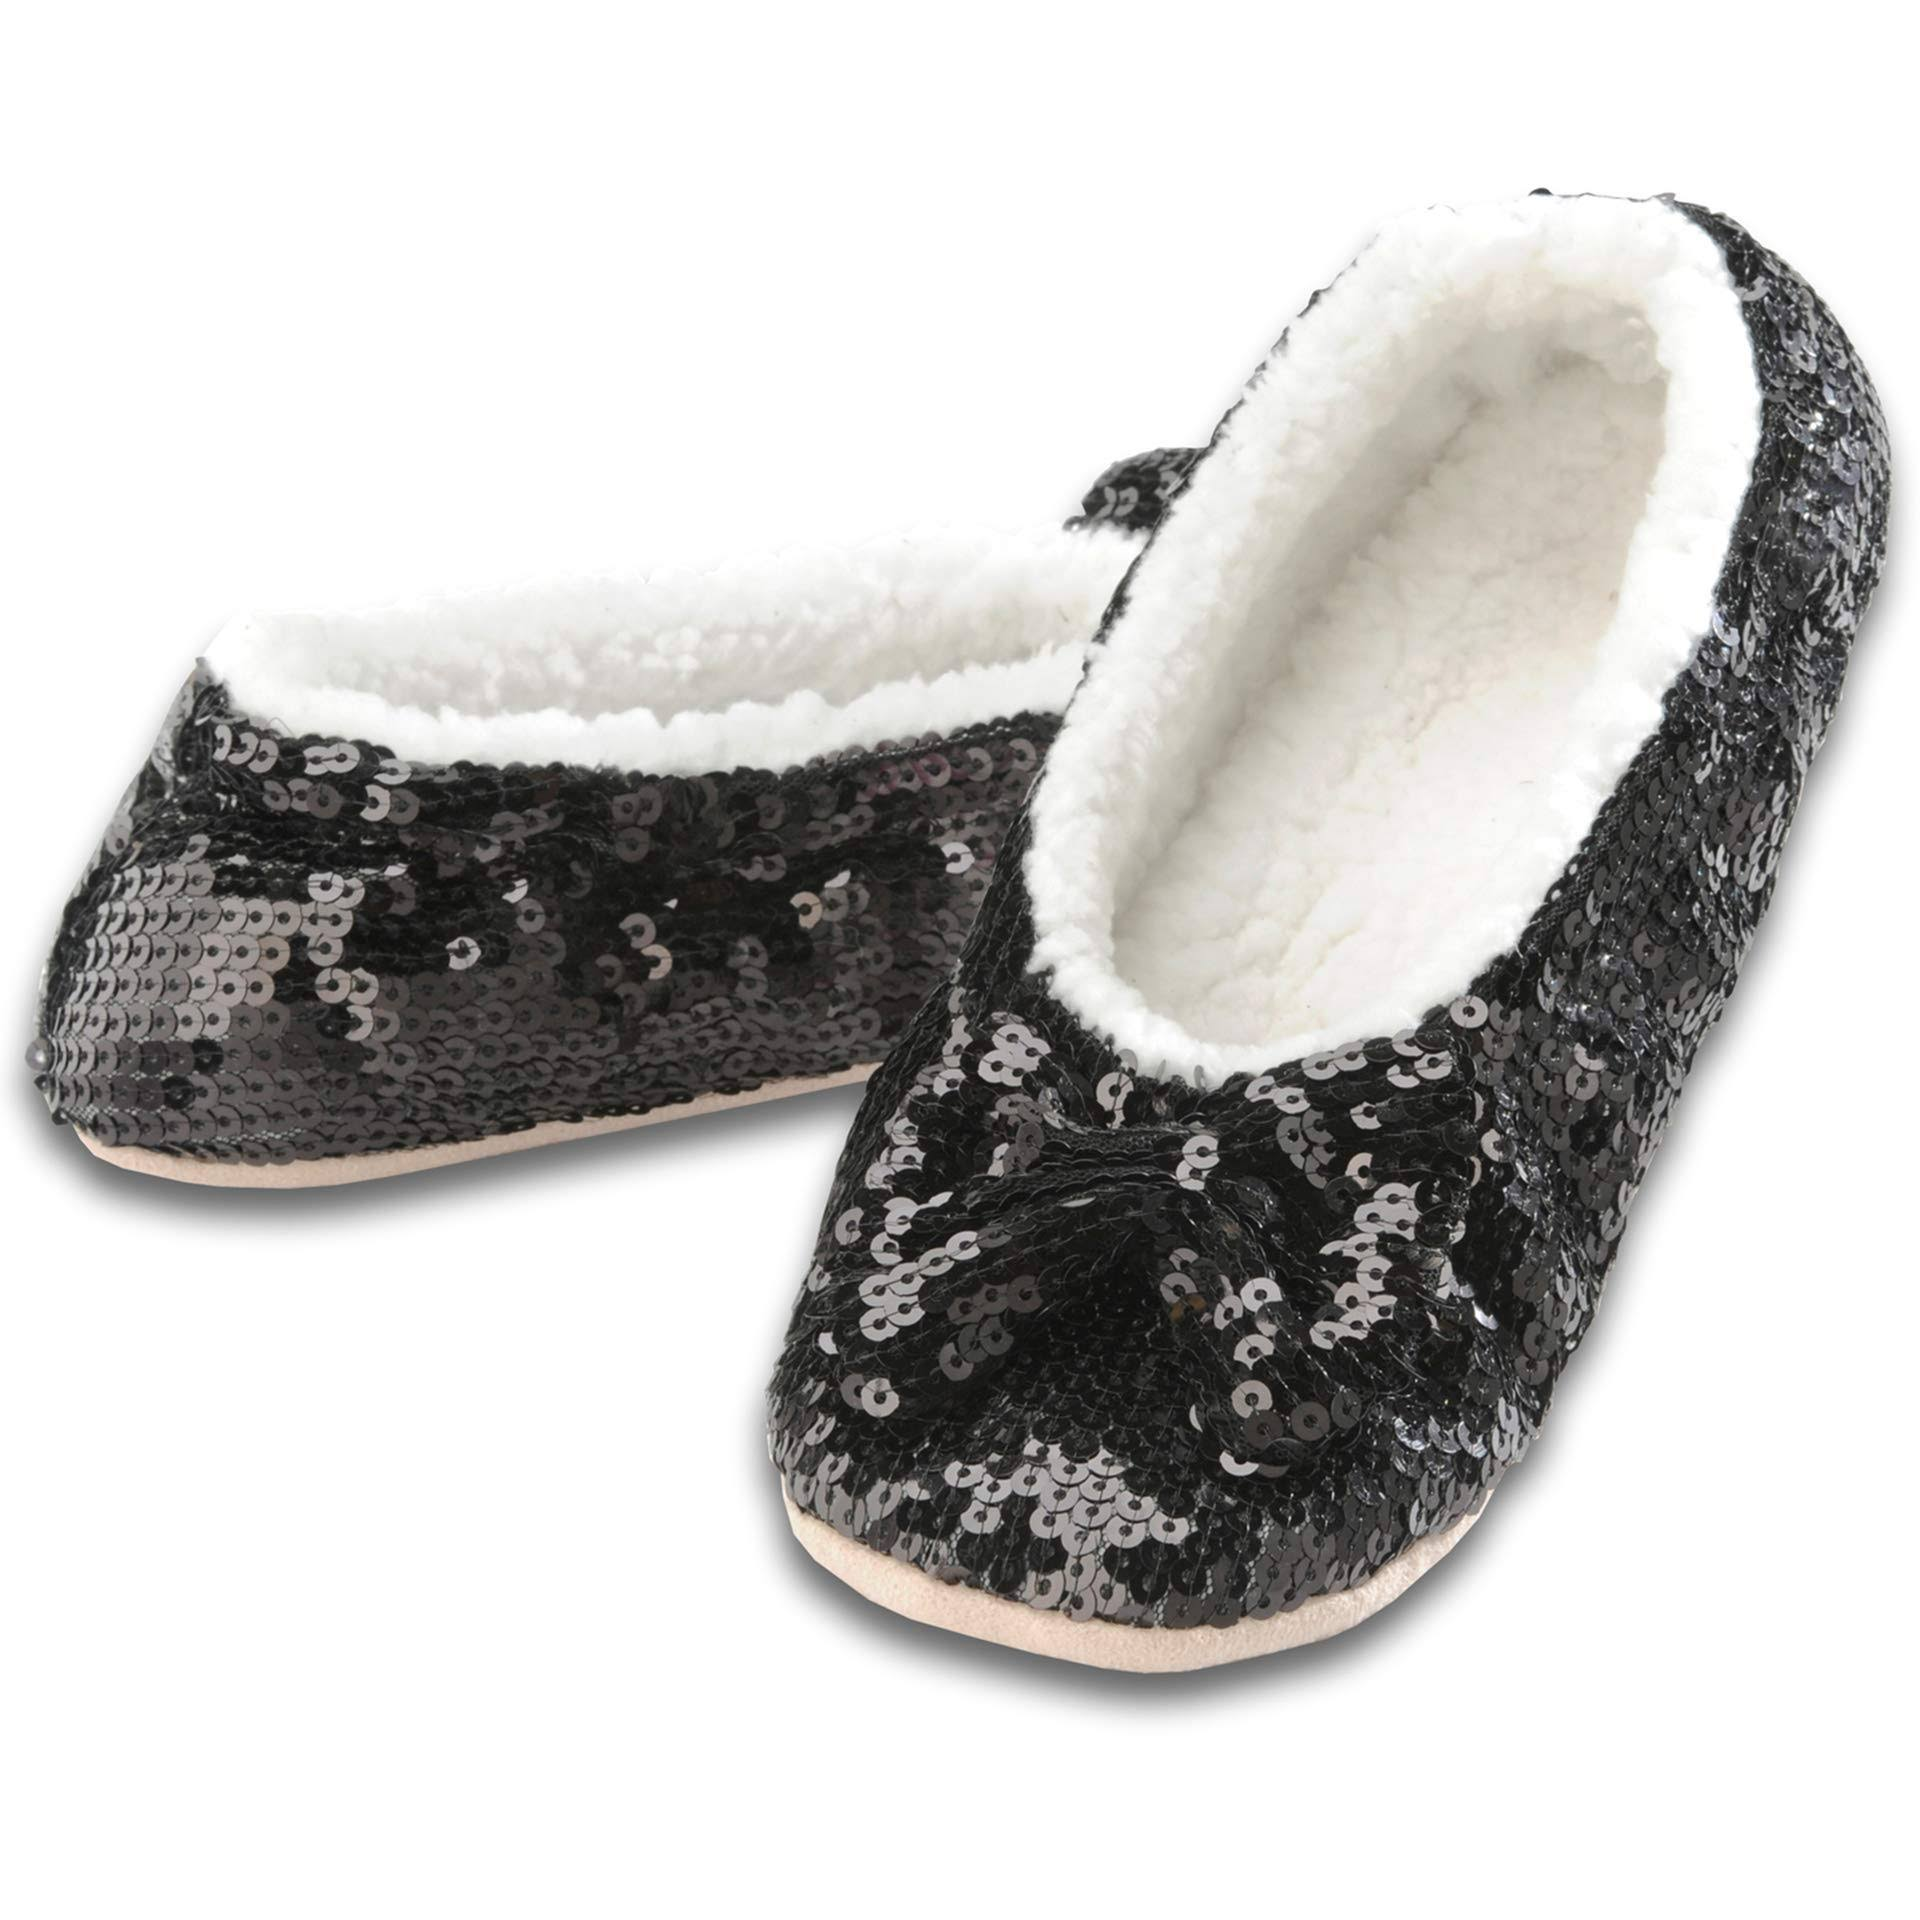 Snoozies Womens Ballerina Slippers - Sequin Shine with Bow, Black, Small